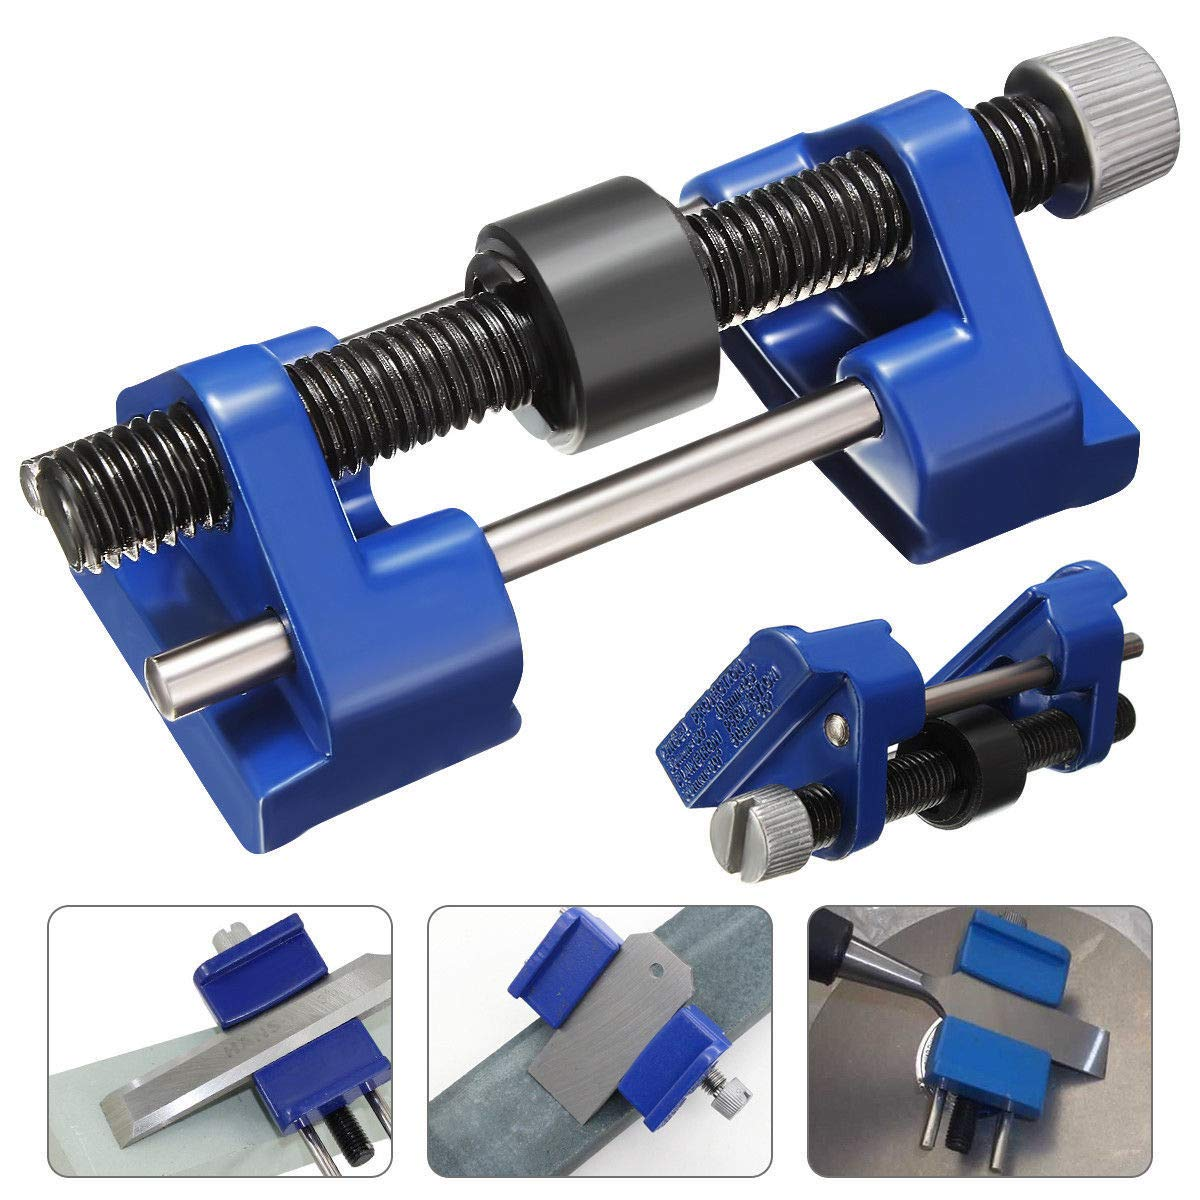 Honing Guide Jig for Sharpening System Adjustable Stainless Steel Honing Guide Chisel Plane Iron Planers Blade